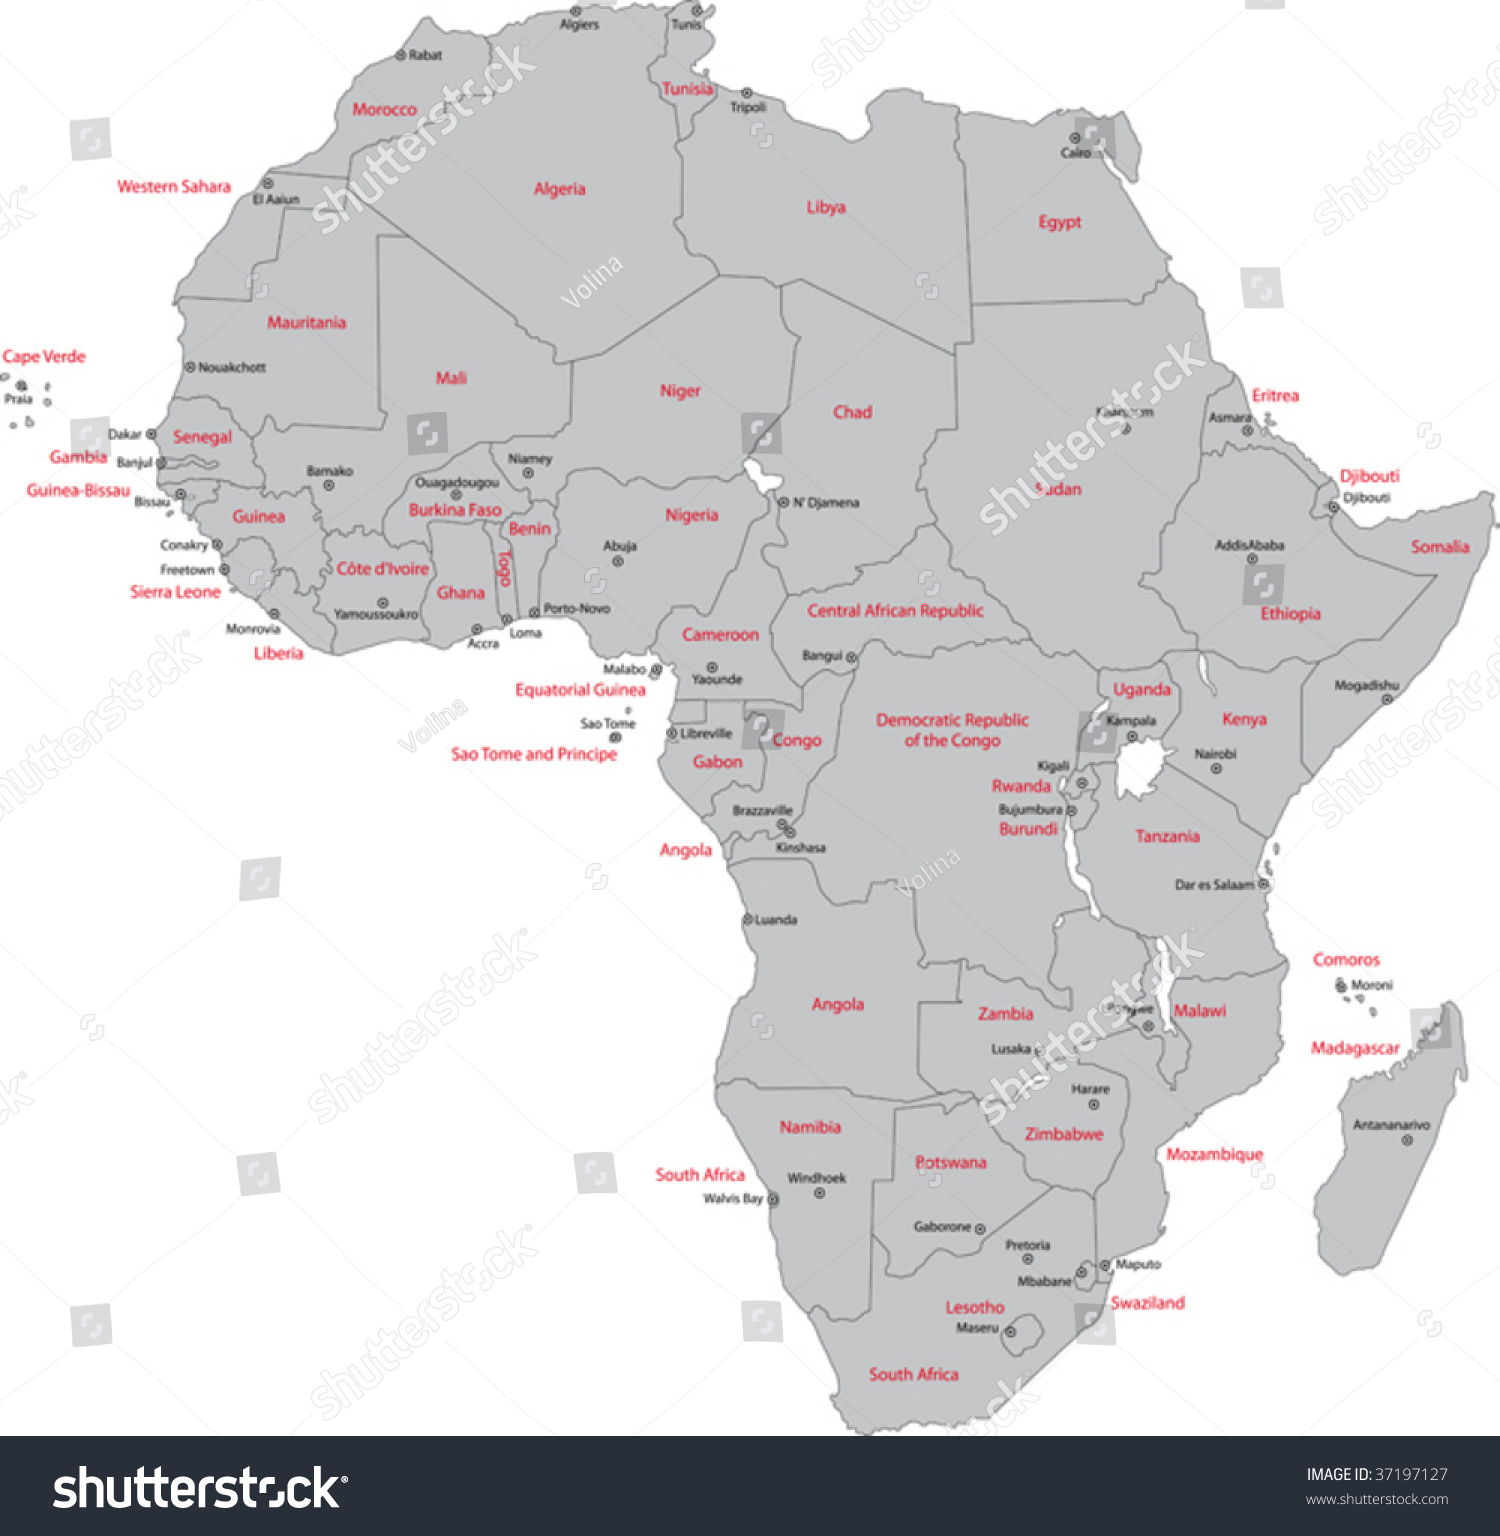 Africa Map And Countries.Africa Map Countries Capital Cities Stock Vector Royalty Free